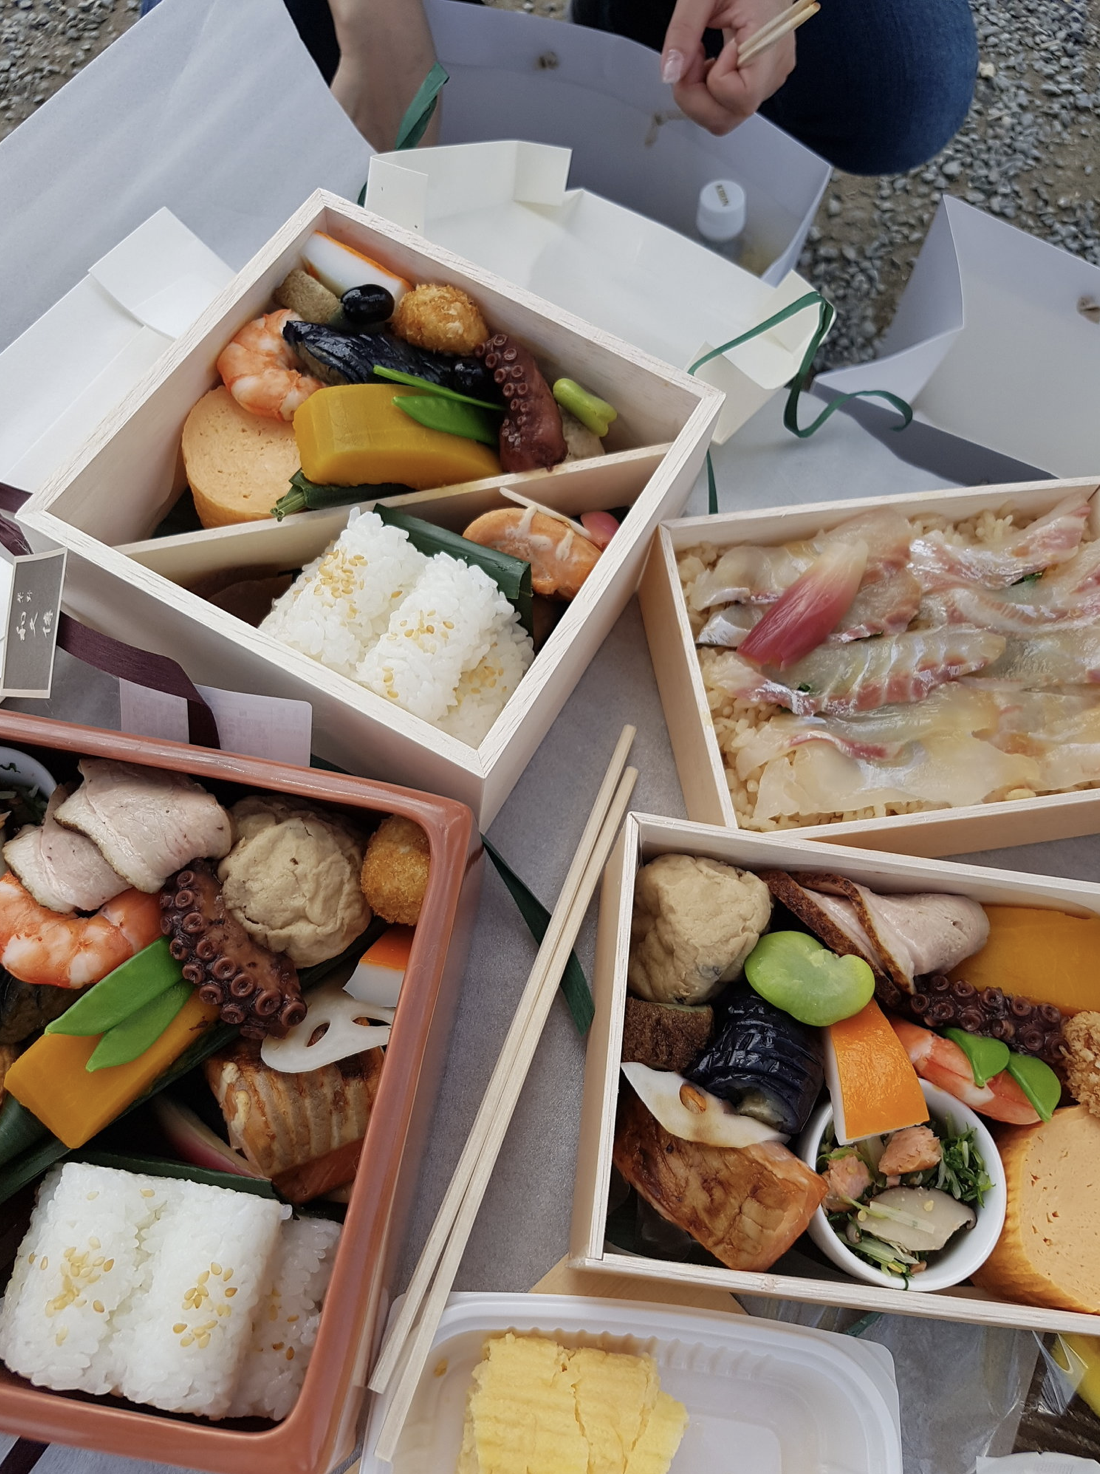 Registration for OH Studio's Hanami Bento Picnic Workshop Now Open